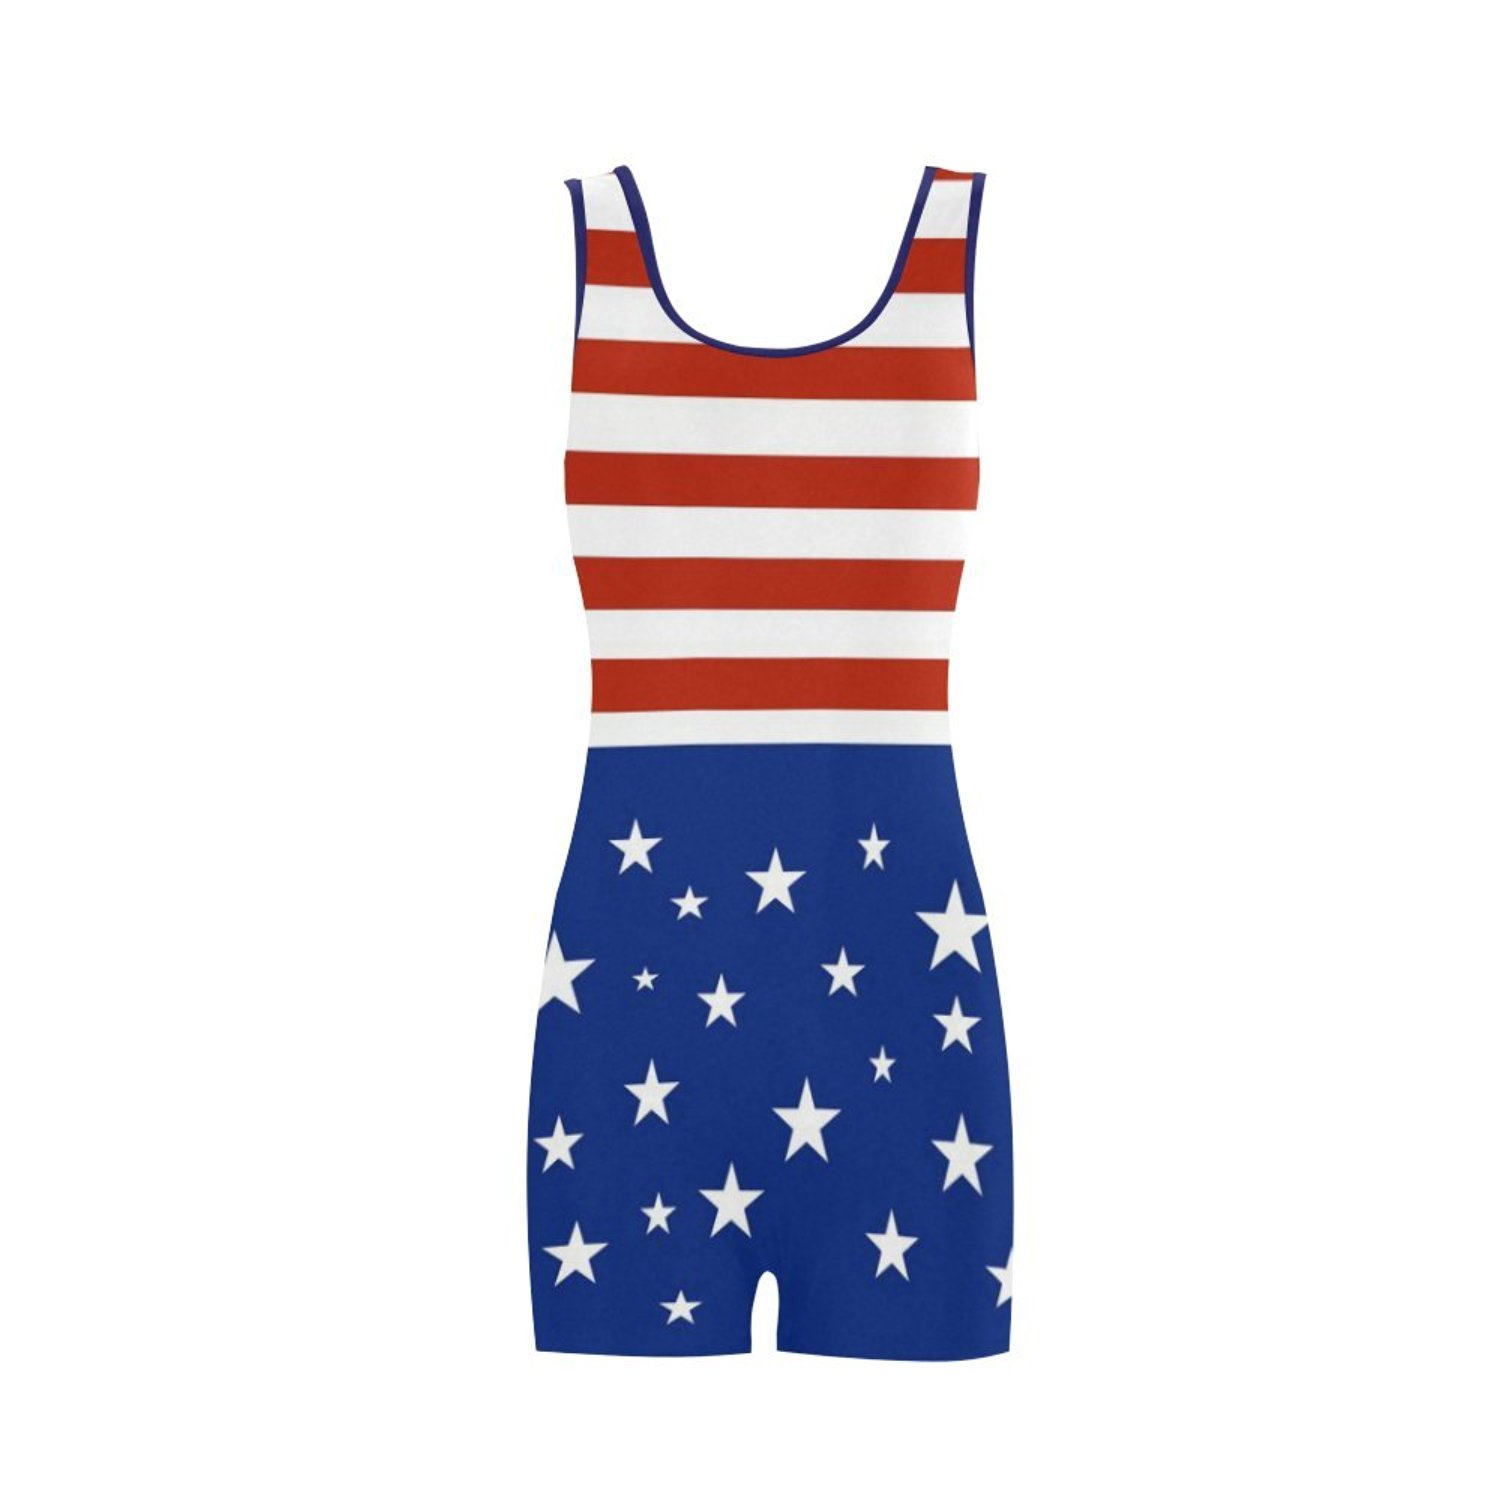 461d60cb4c5b9 Get Quotations · Find Arts Customized Red White And Blue Stripes And Stars Classic  One Piece Swimwear Swimsuit Bathing